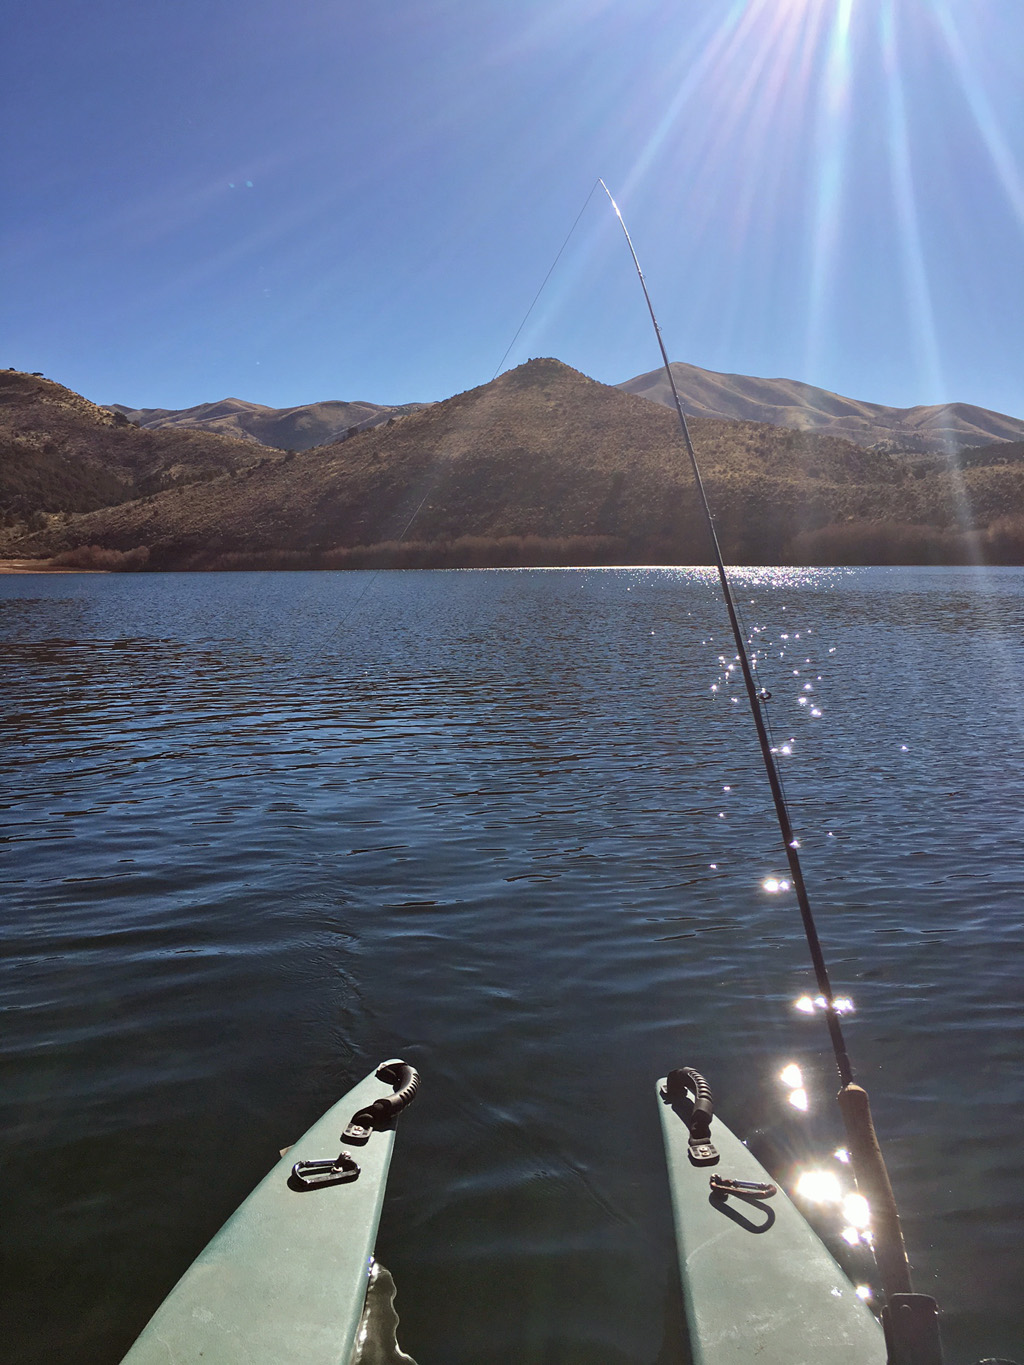 this-lake-closes-to-fishing-nov-30-getting-my-last-paddle-strokes-in